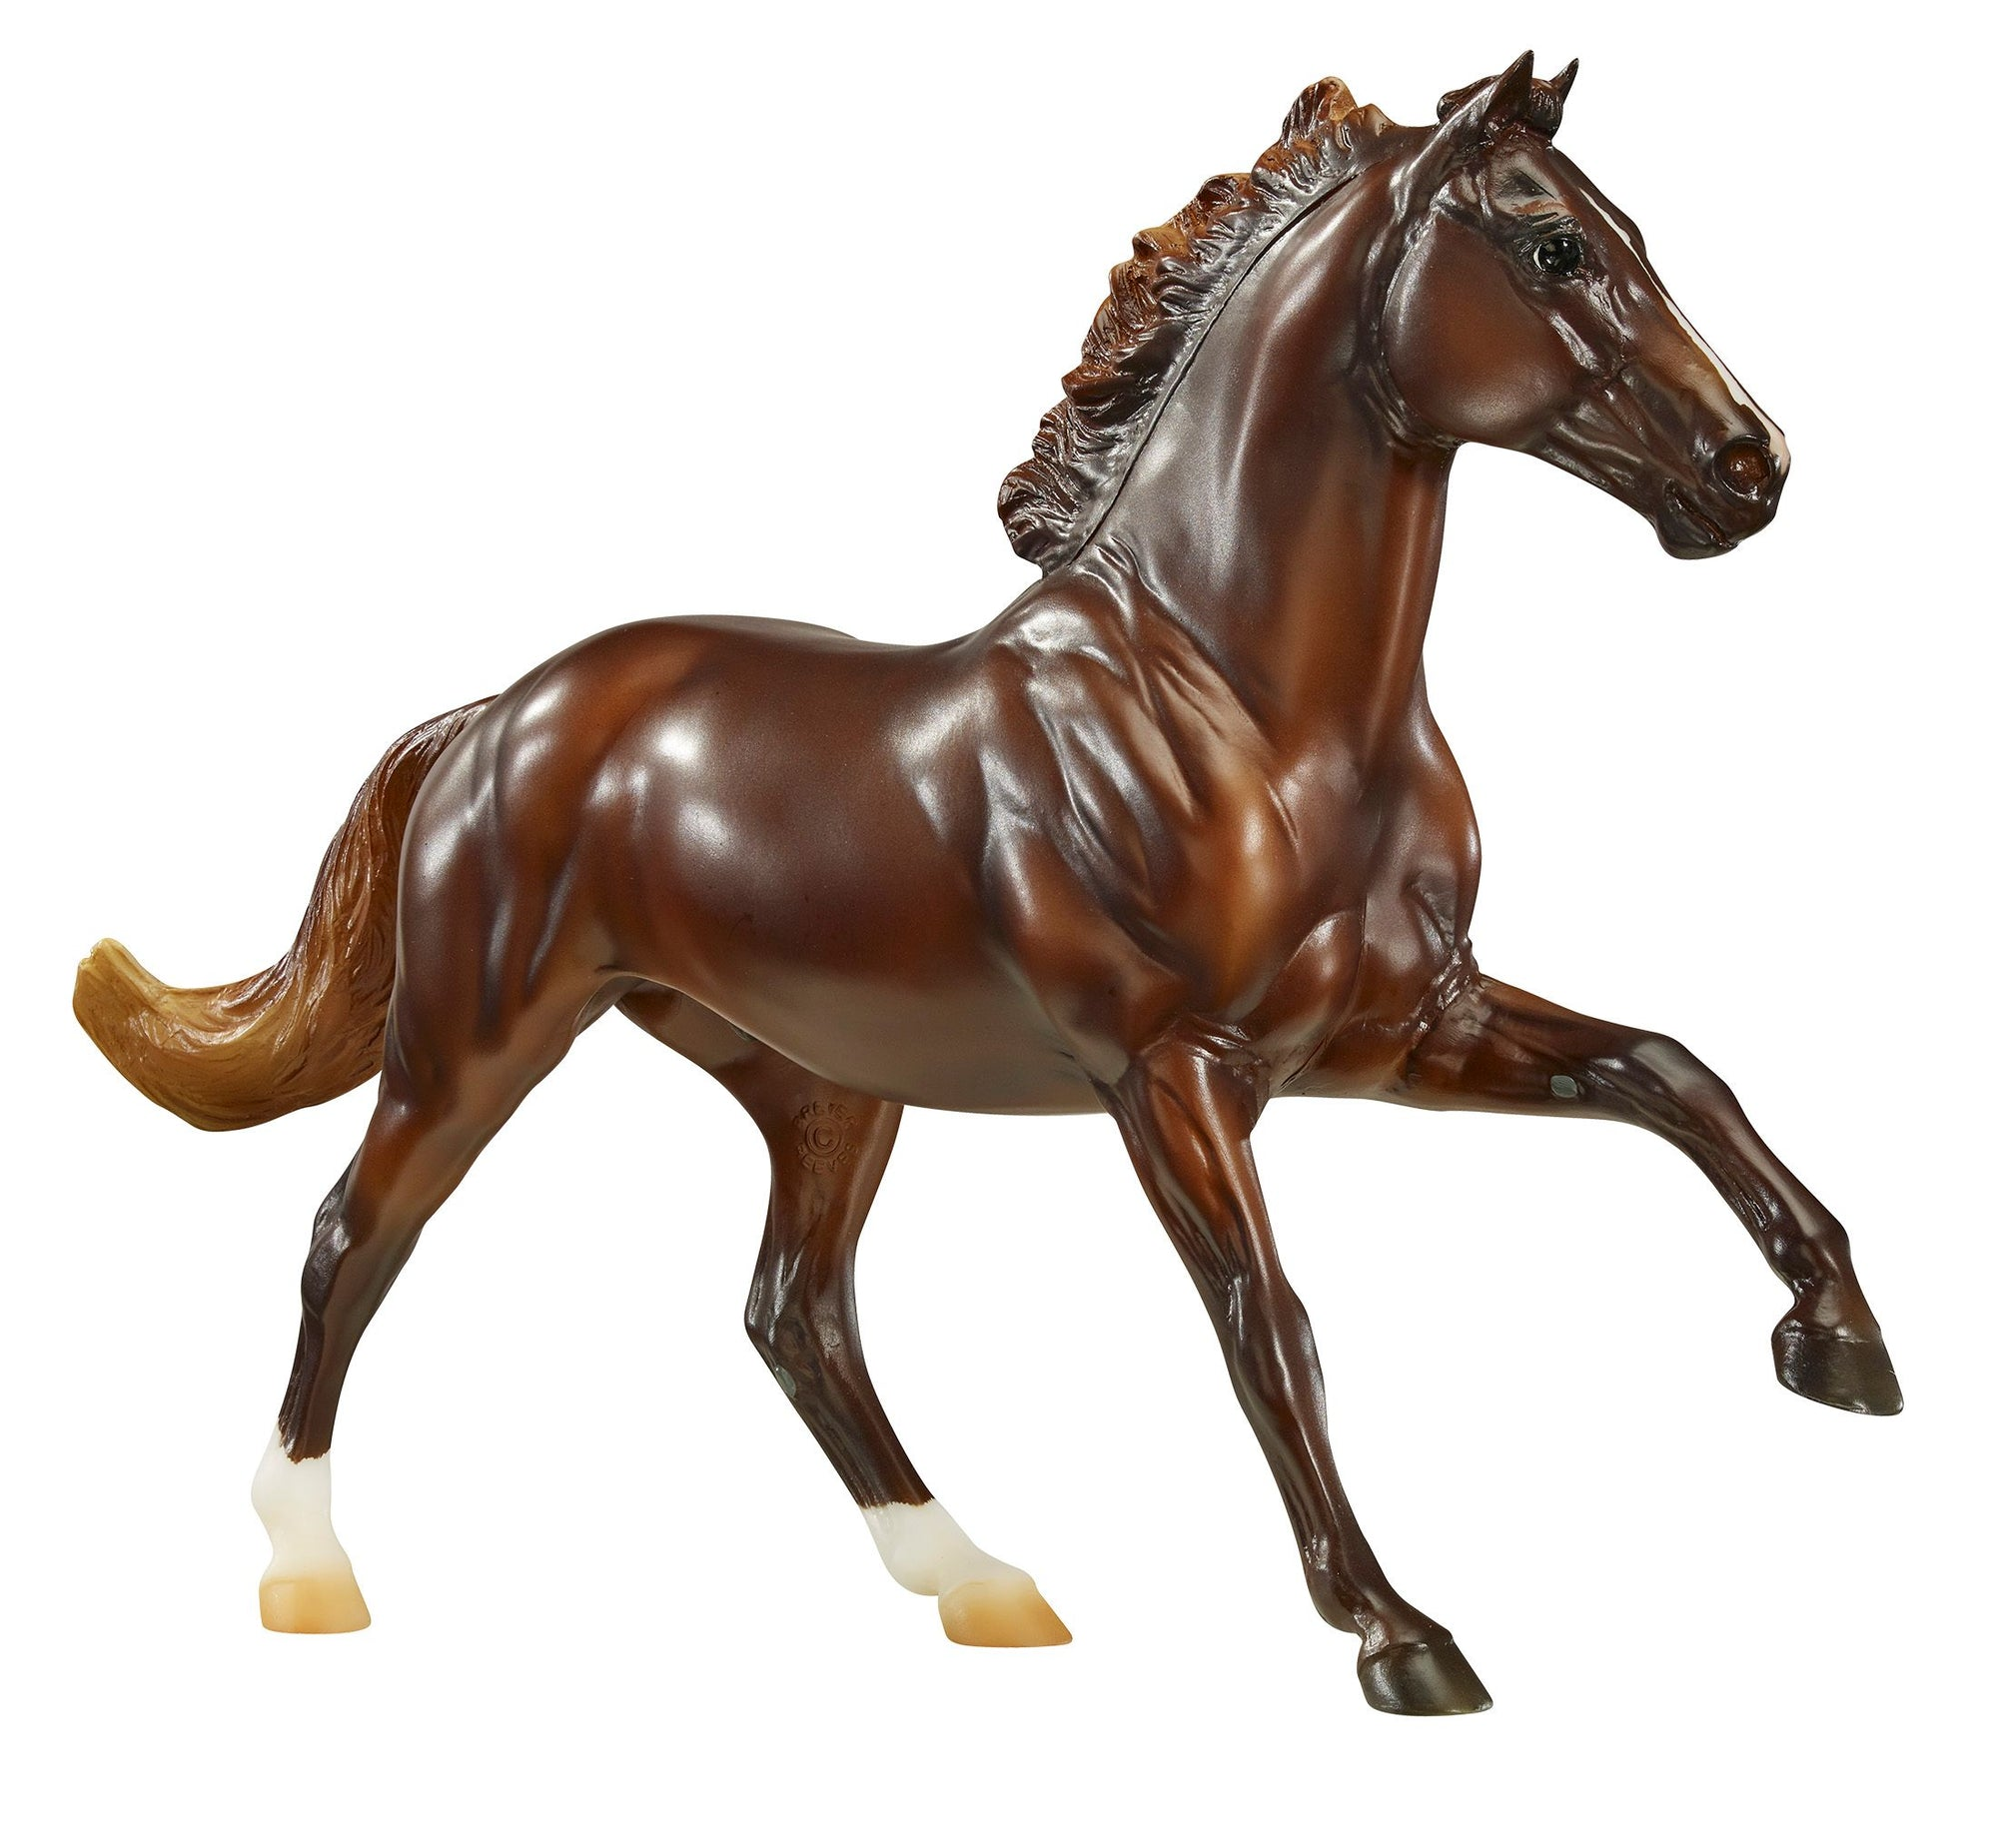 Breyer Avatar's Jazzman - Breeches.com